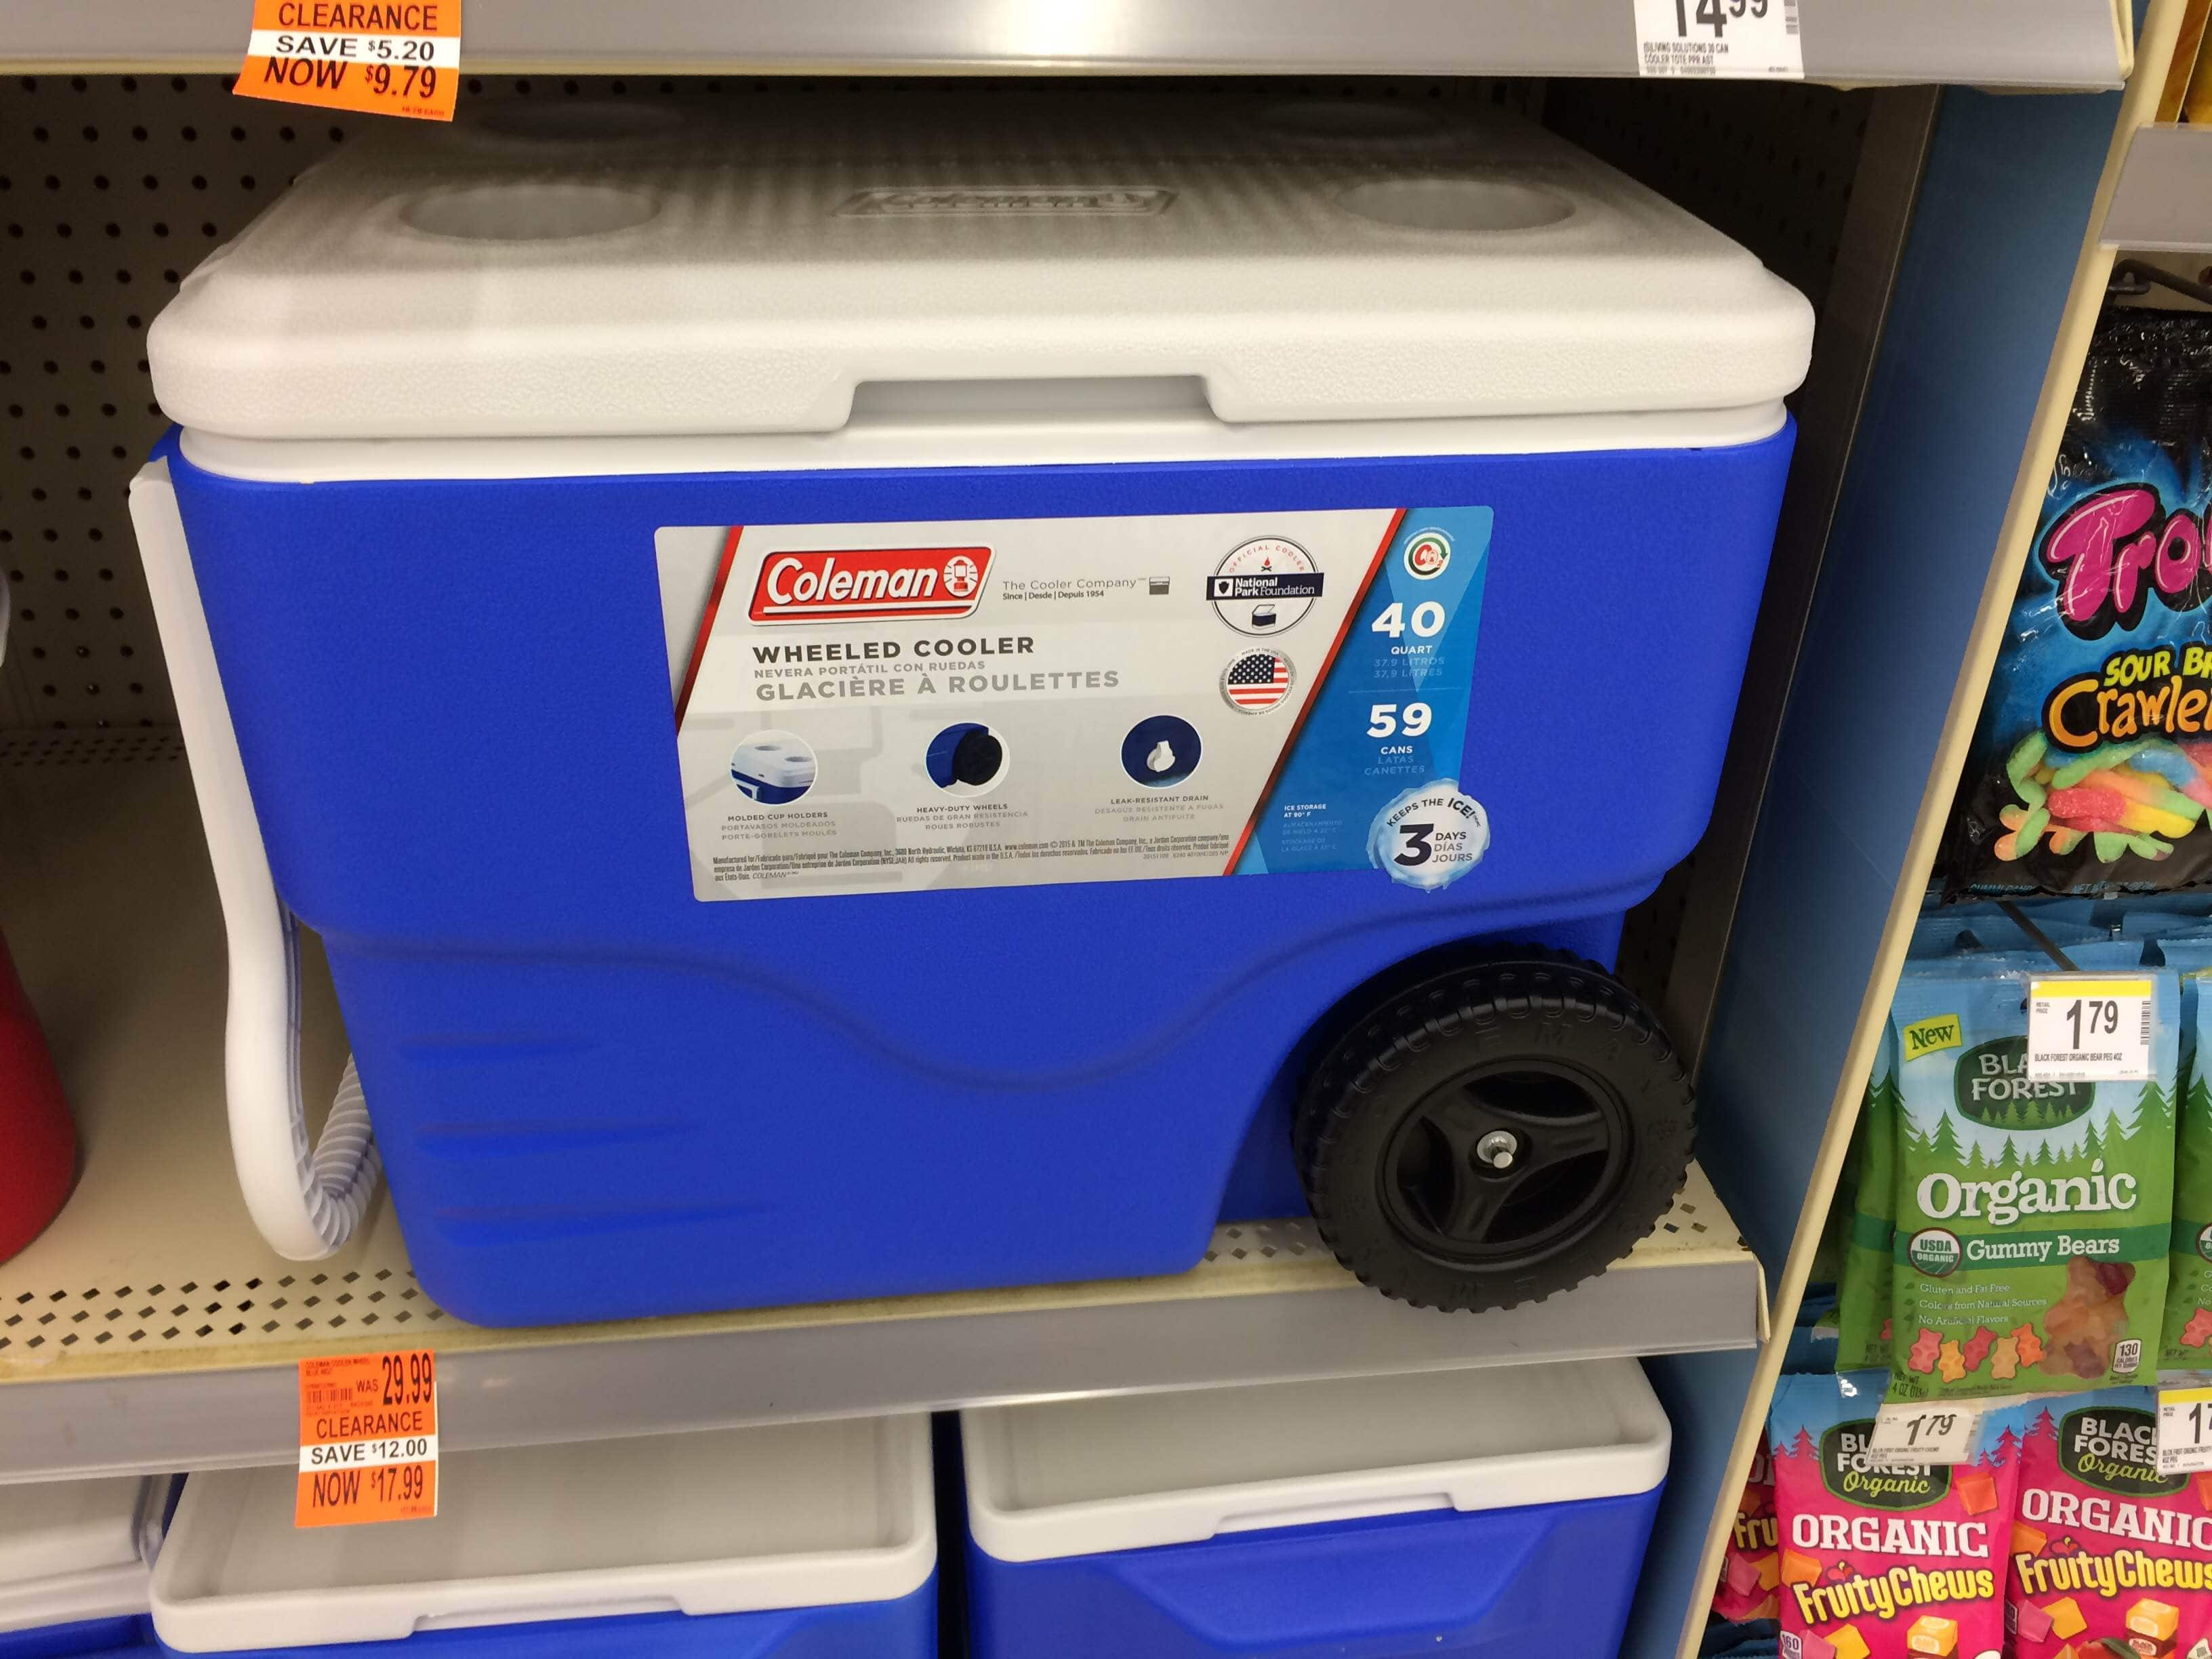 Coleman 40 qt 59 Cans - Wheeled Cooler for 17.99 @ Walgreens Clearance - YMMV